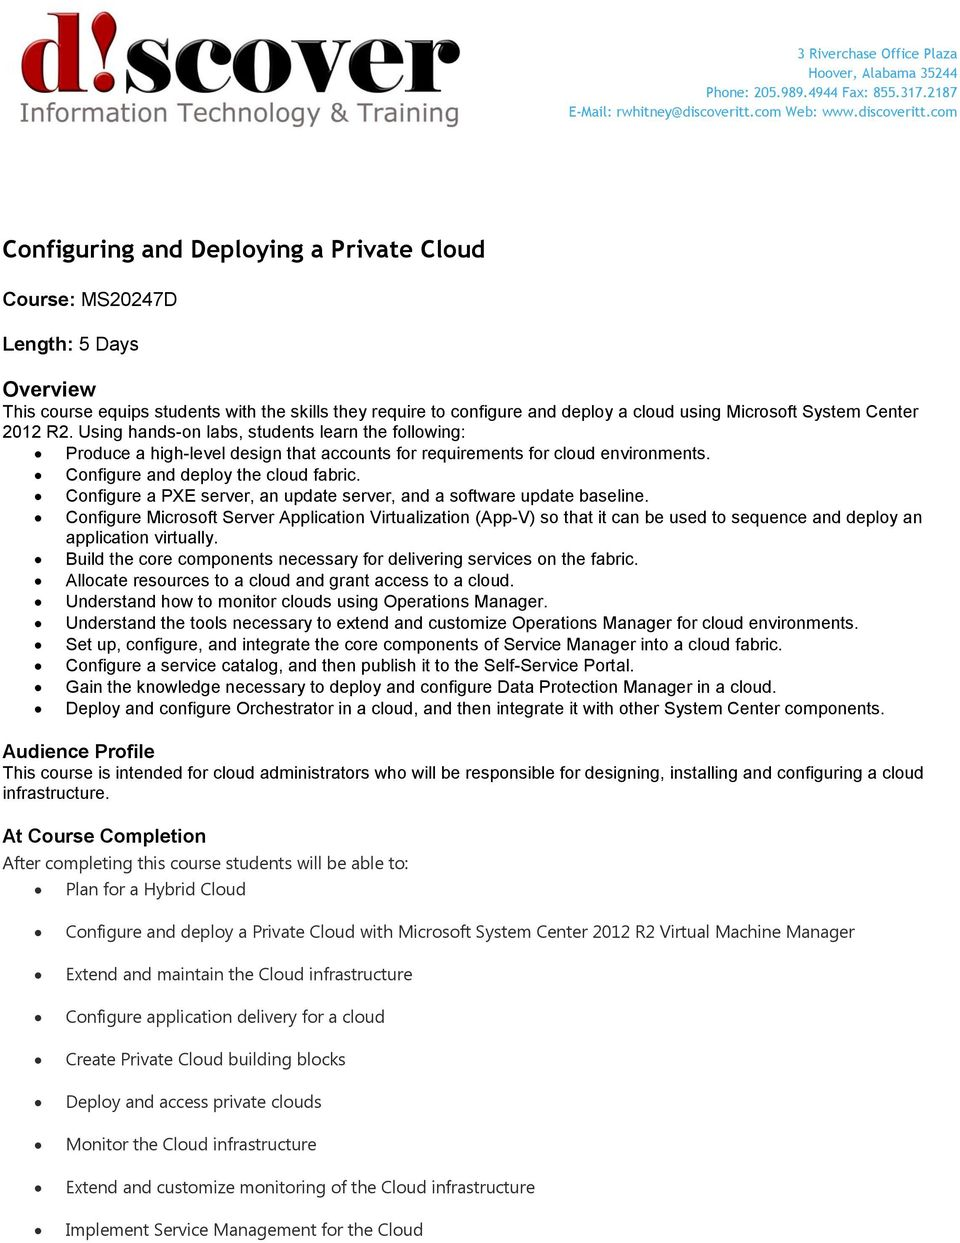 com Configuring and Deploying a Private Cloud Course: MS20247D Length: 5 Days Overview This course equips students with the skills they require to configure and deploy a cloud using Microsoft System